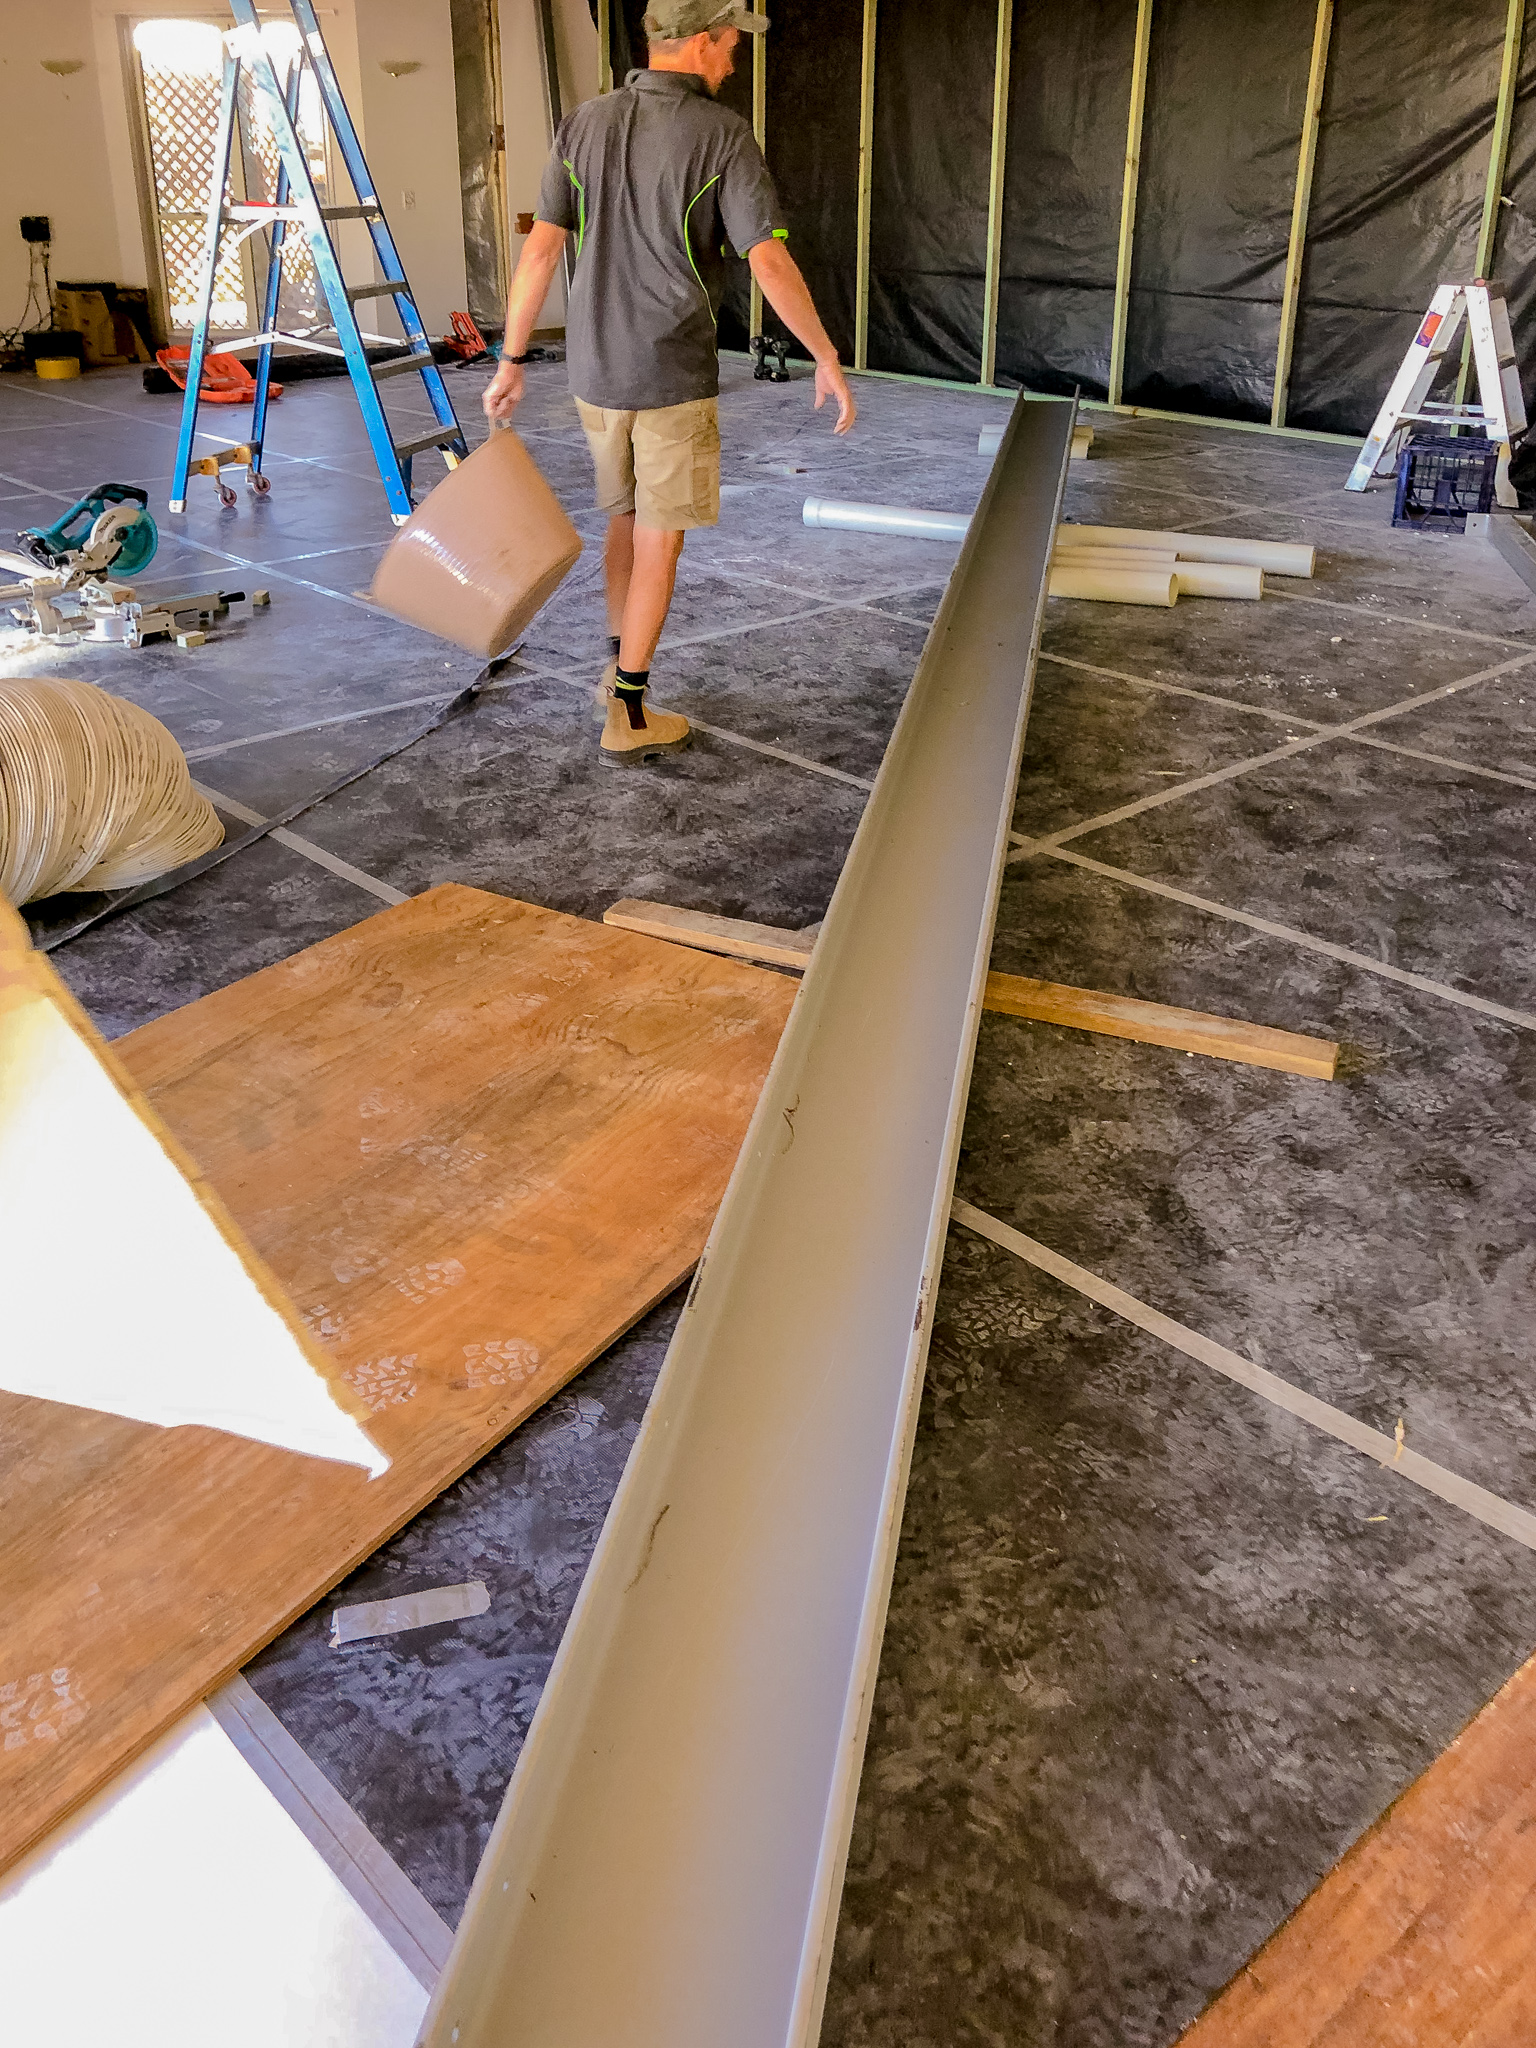 Aged-Care-Construction-Tradespeople-Steel-Beam-Queensland-Tradie